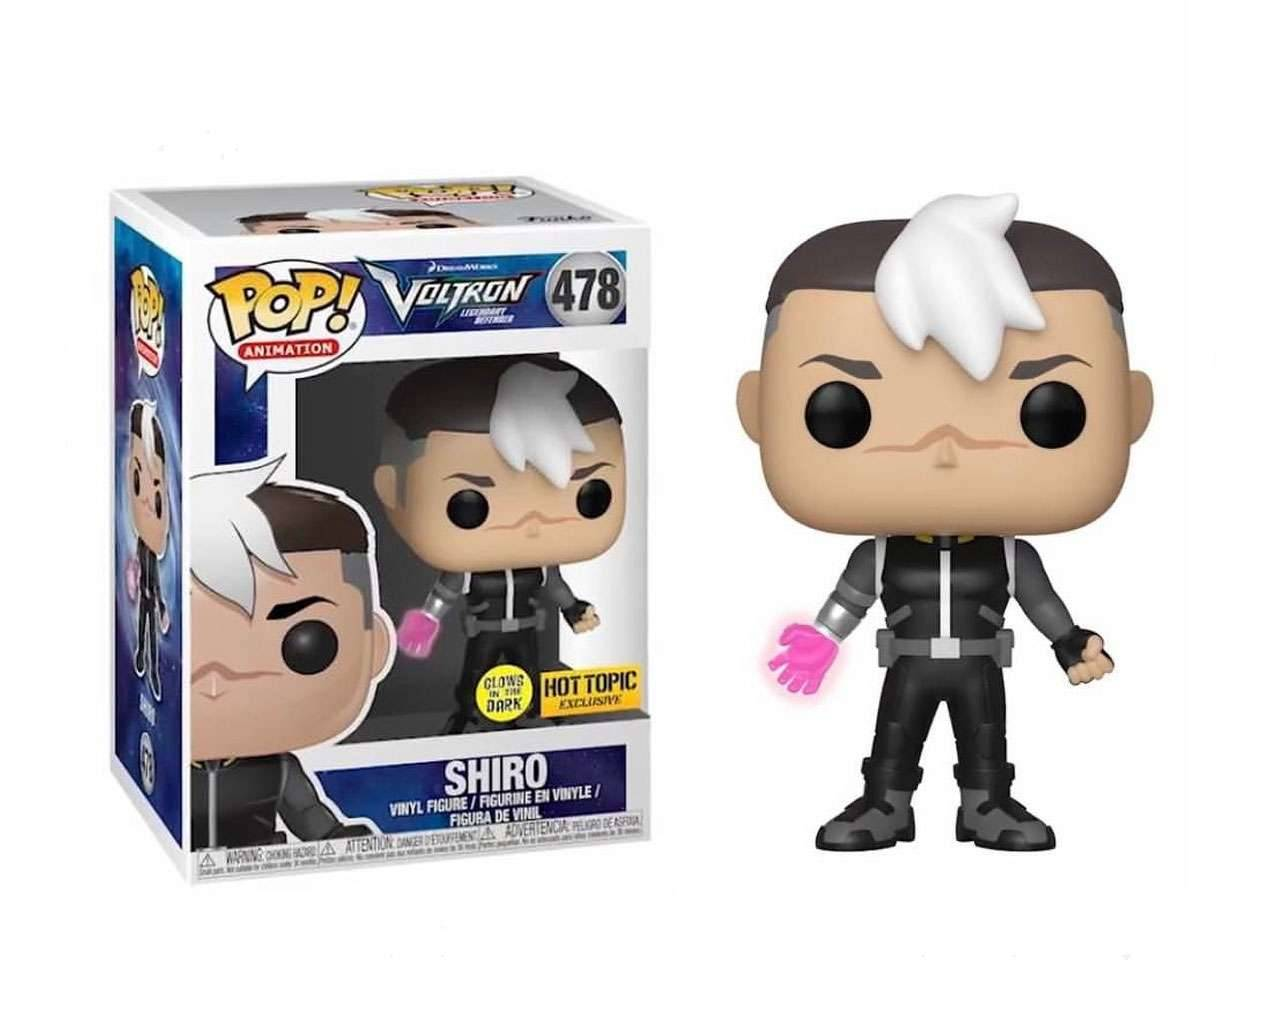 Shiro (GITD Exclusive) Pop! Vinyl